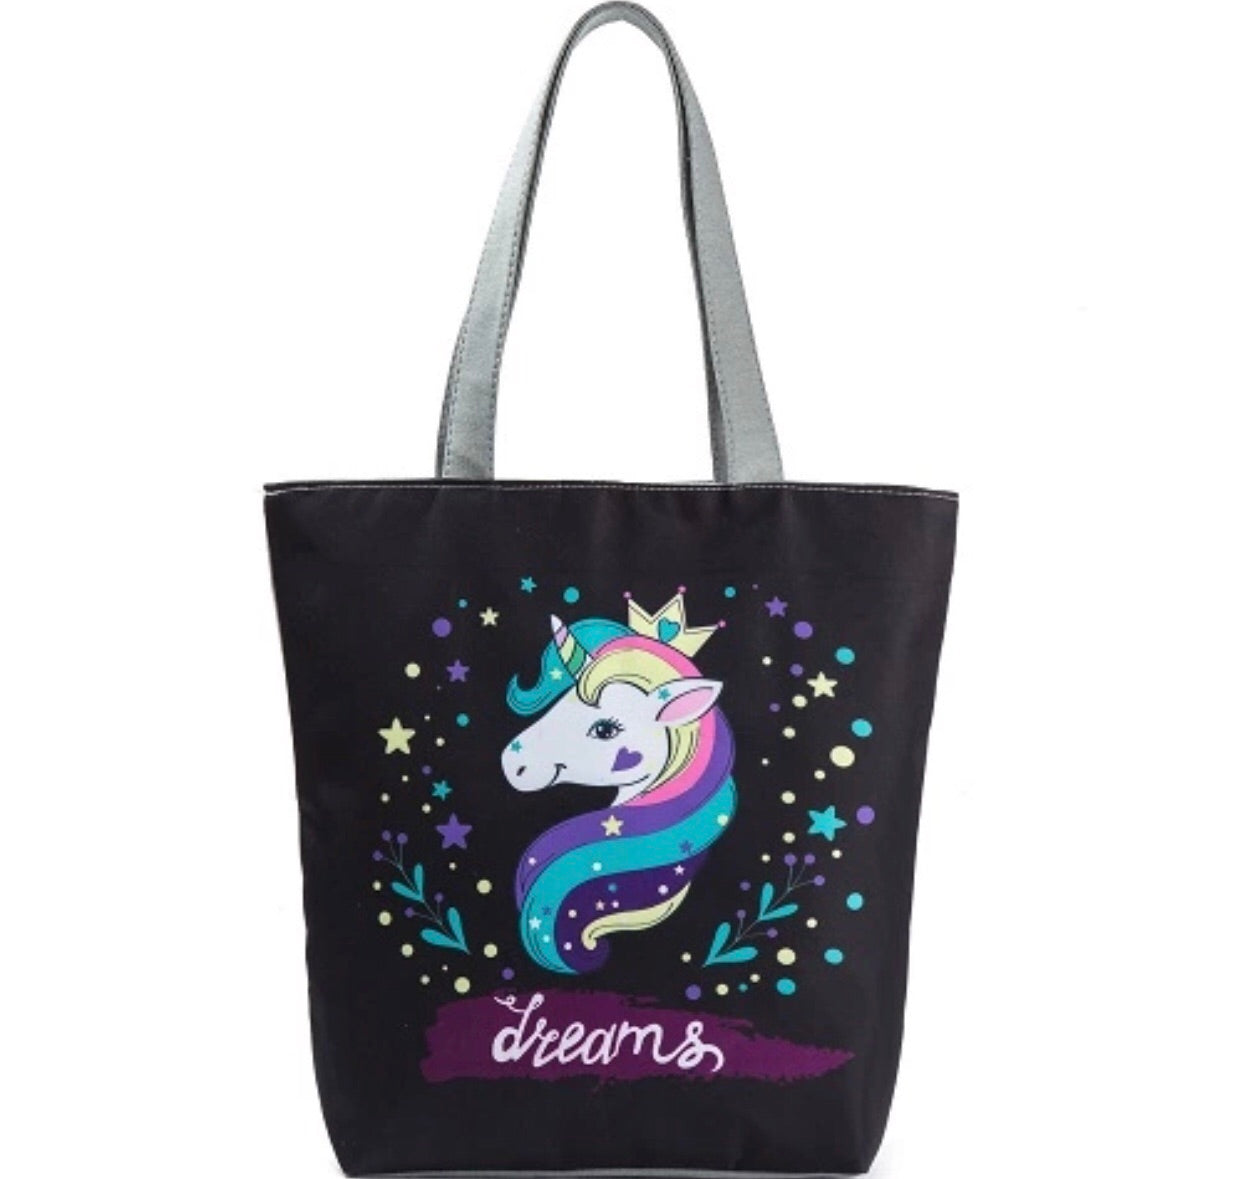 Unicorn Tote with zipper